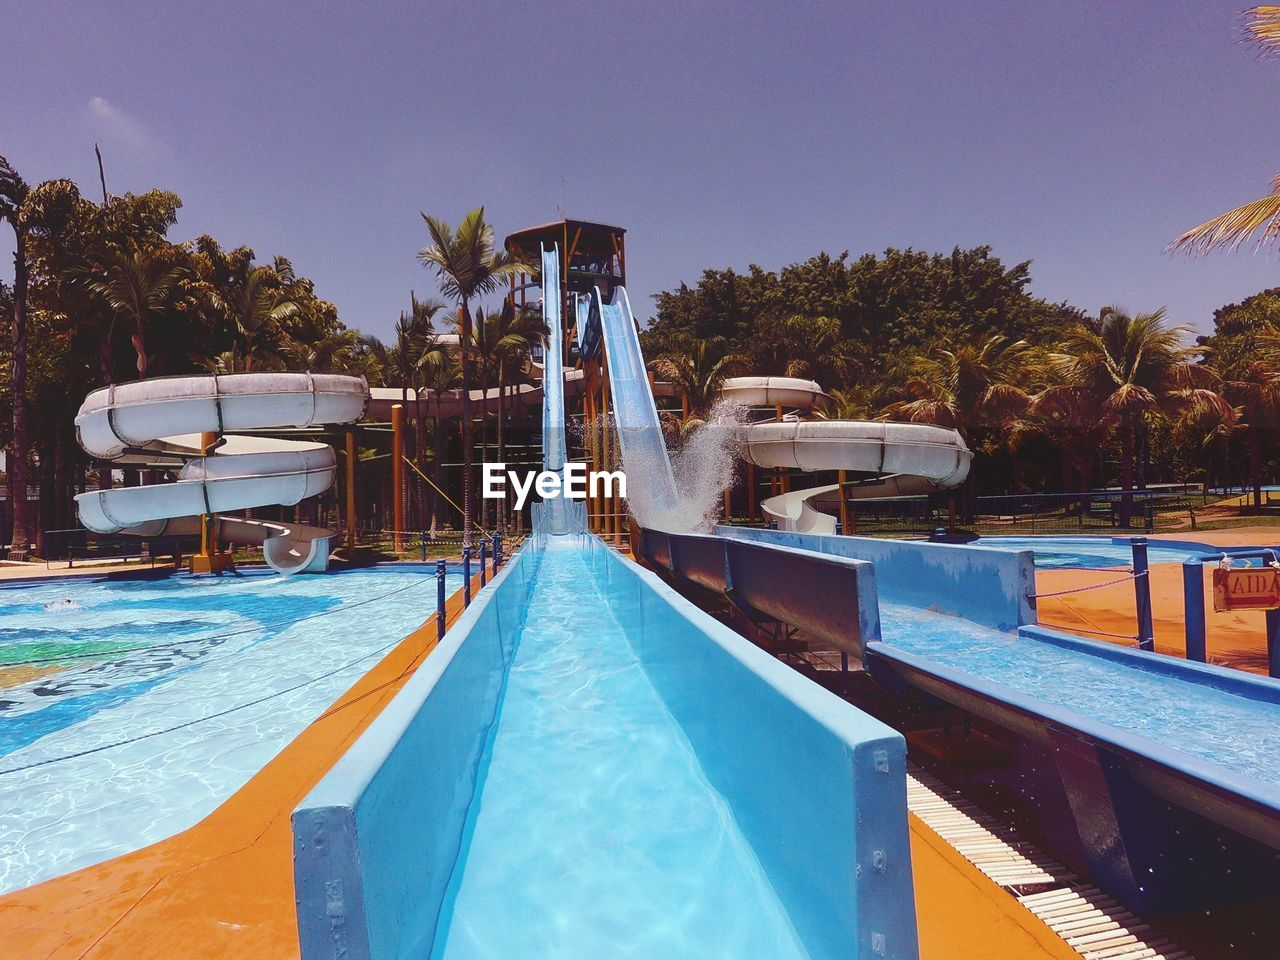 swimming pool, pool, water, tree, sky, nature, no people, blue, tropical climate, tourist resort, poolside, day, plant, palm tree, absence, clear sky, chair, water slide, water park, outdoors